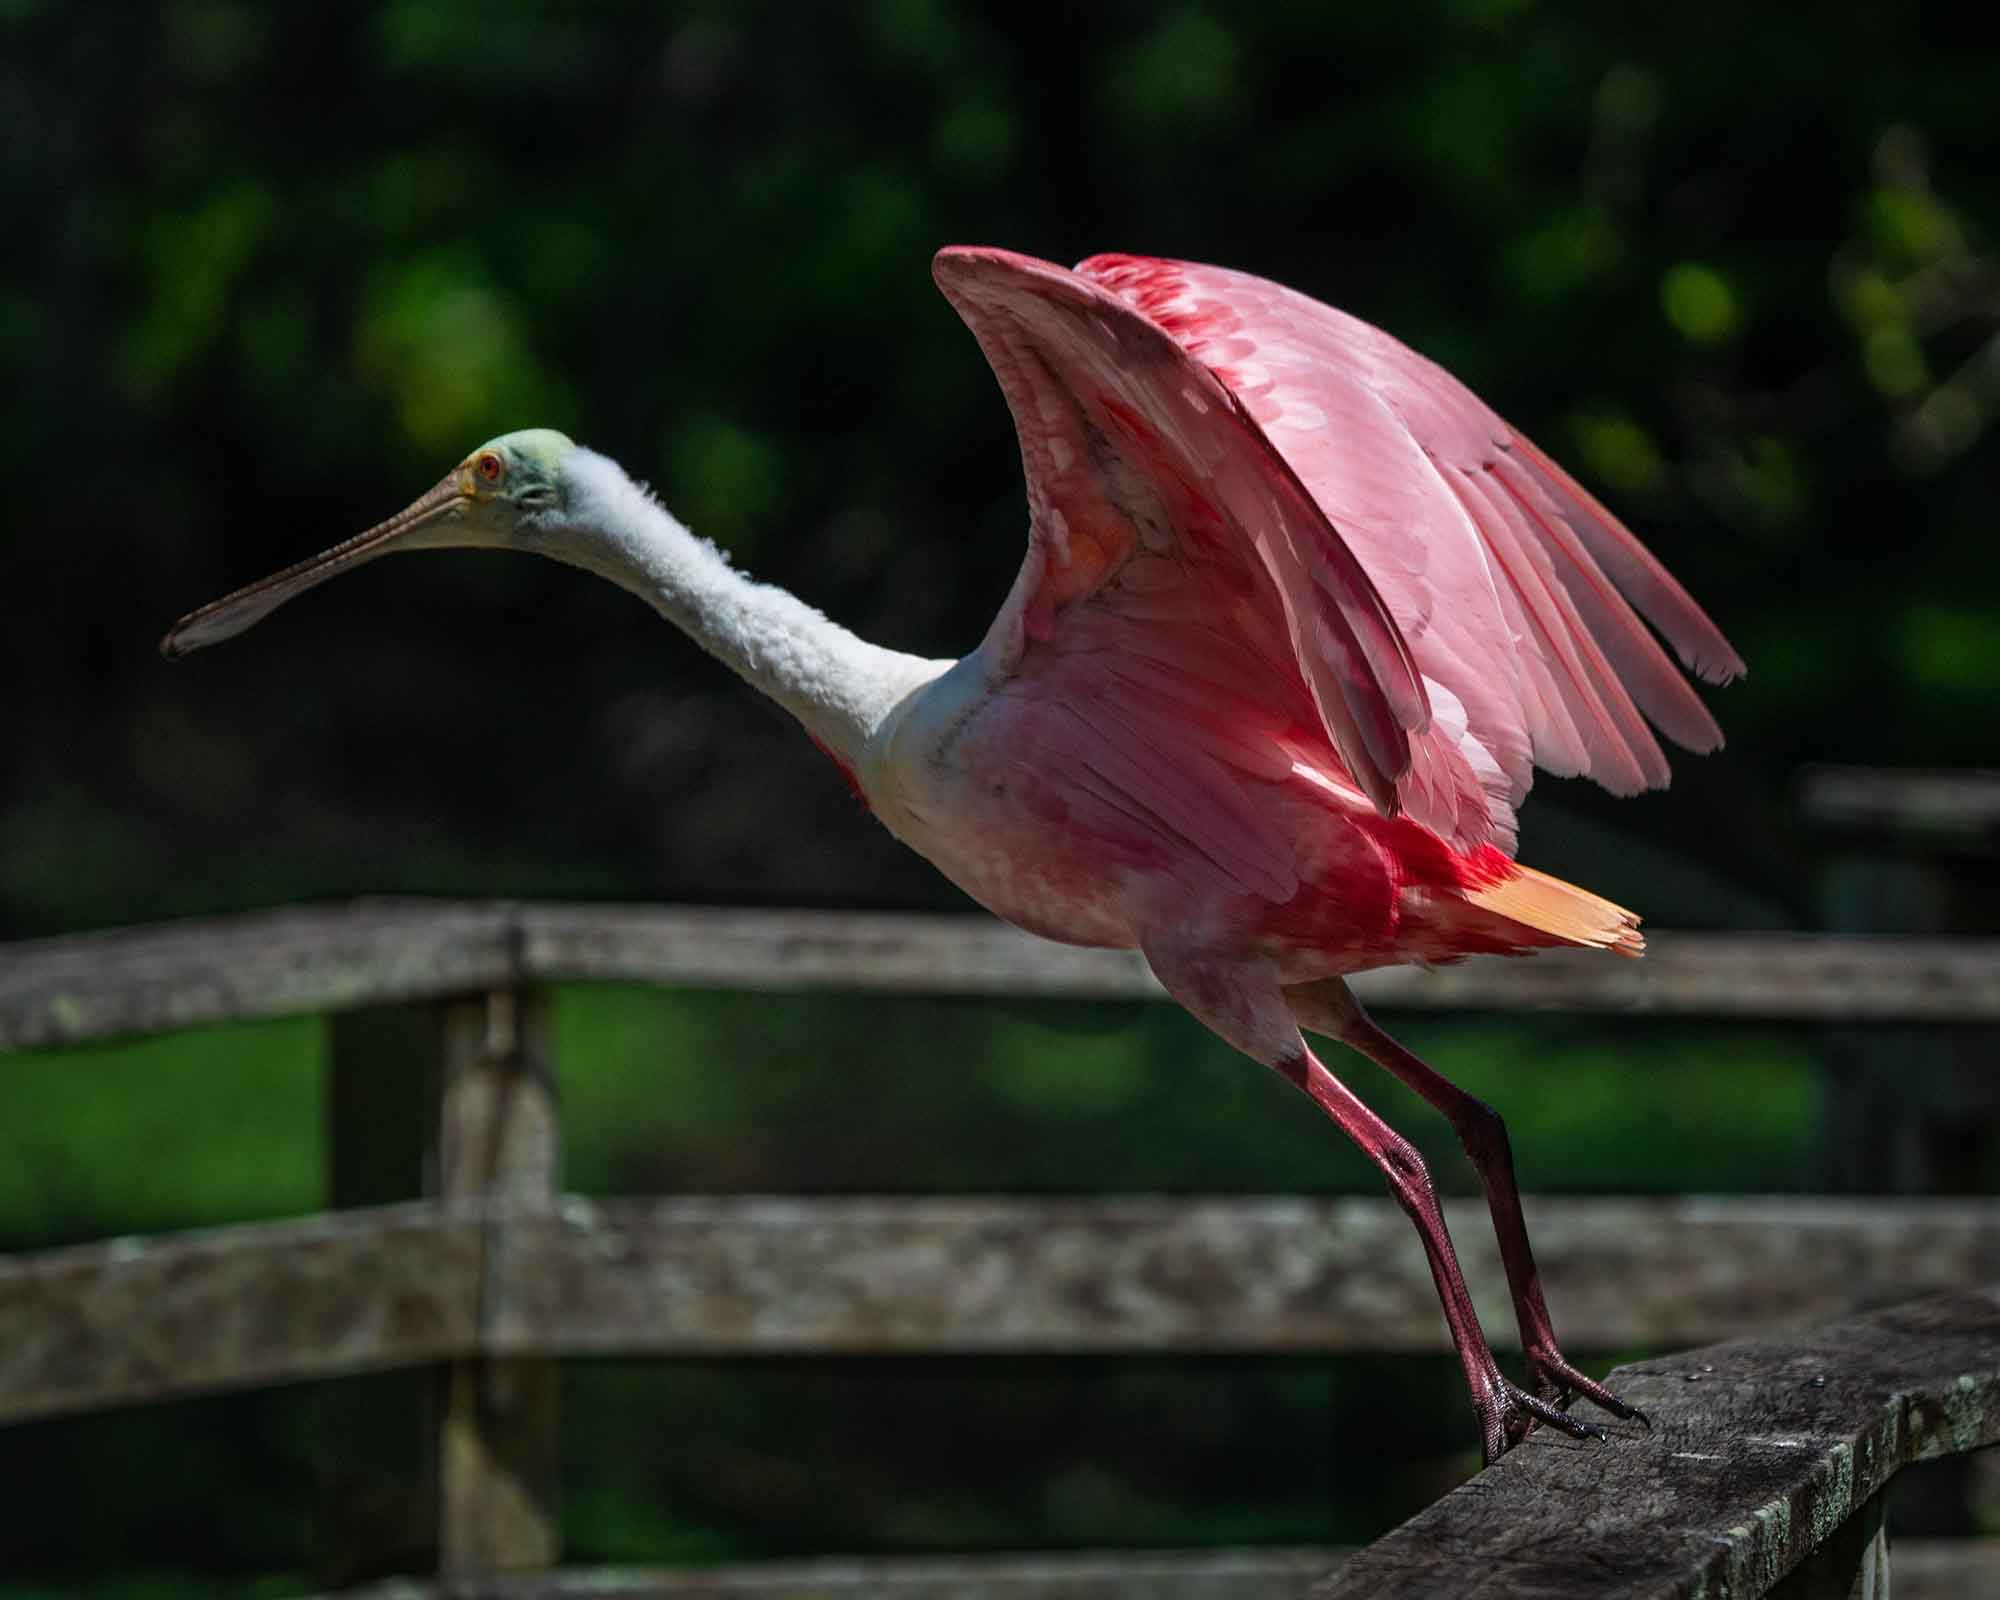 #roseatespoonbill, #florida, #bird, #feathers, #pink, #corkscrew, #profile, #flight